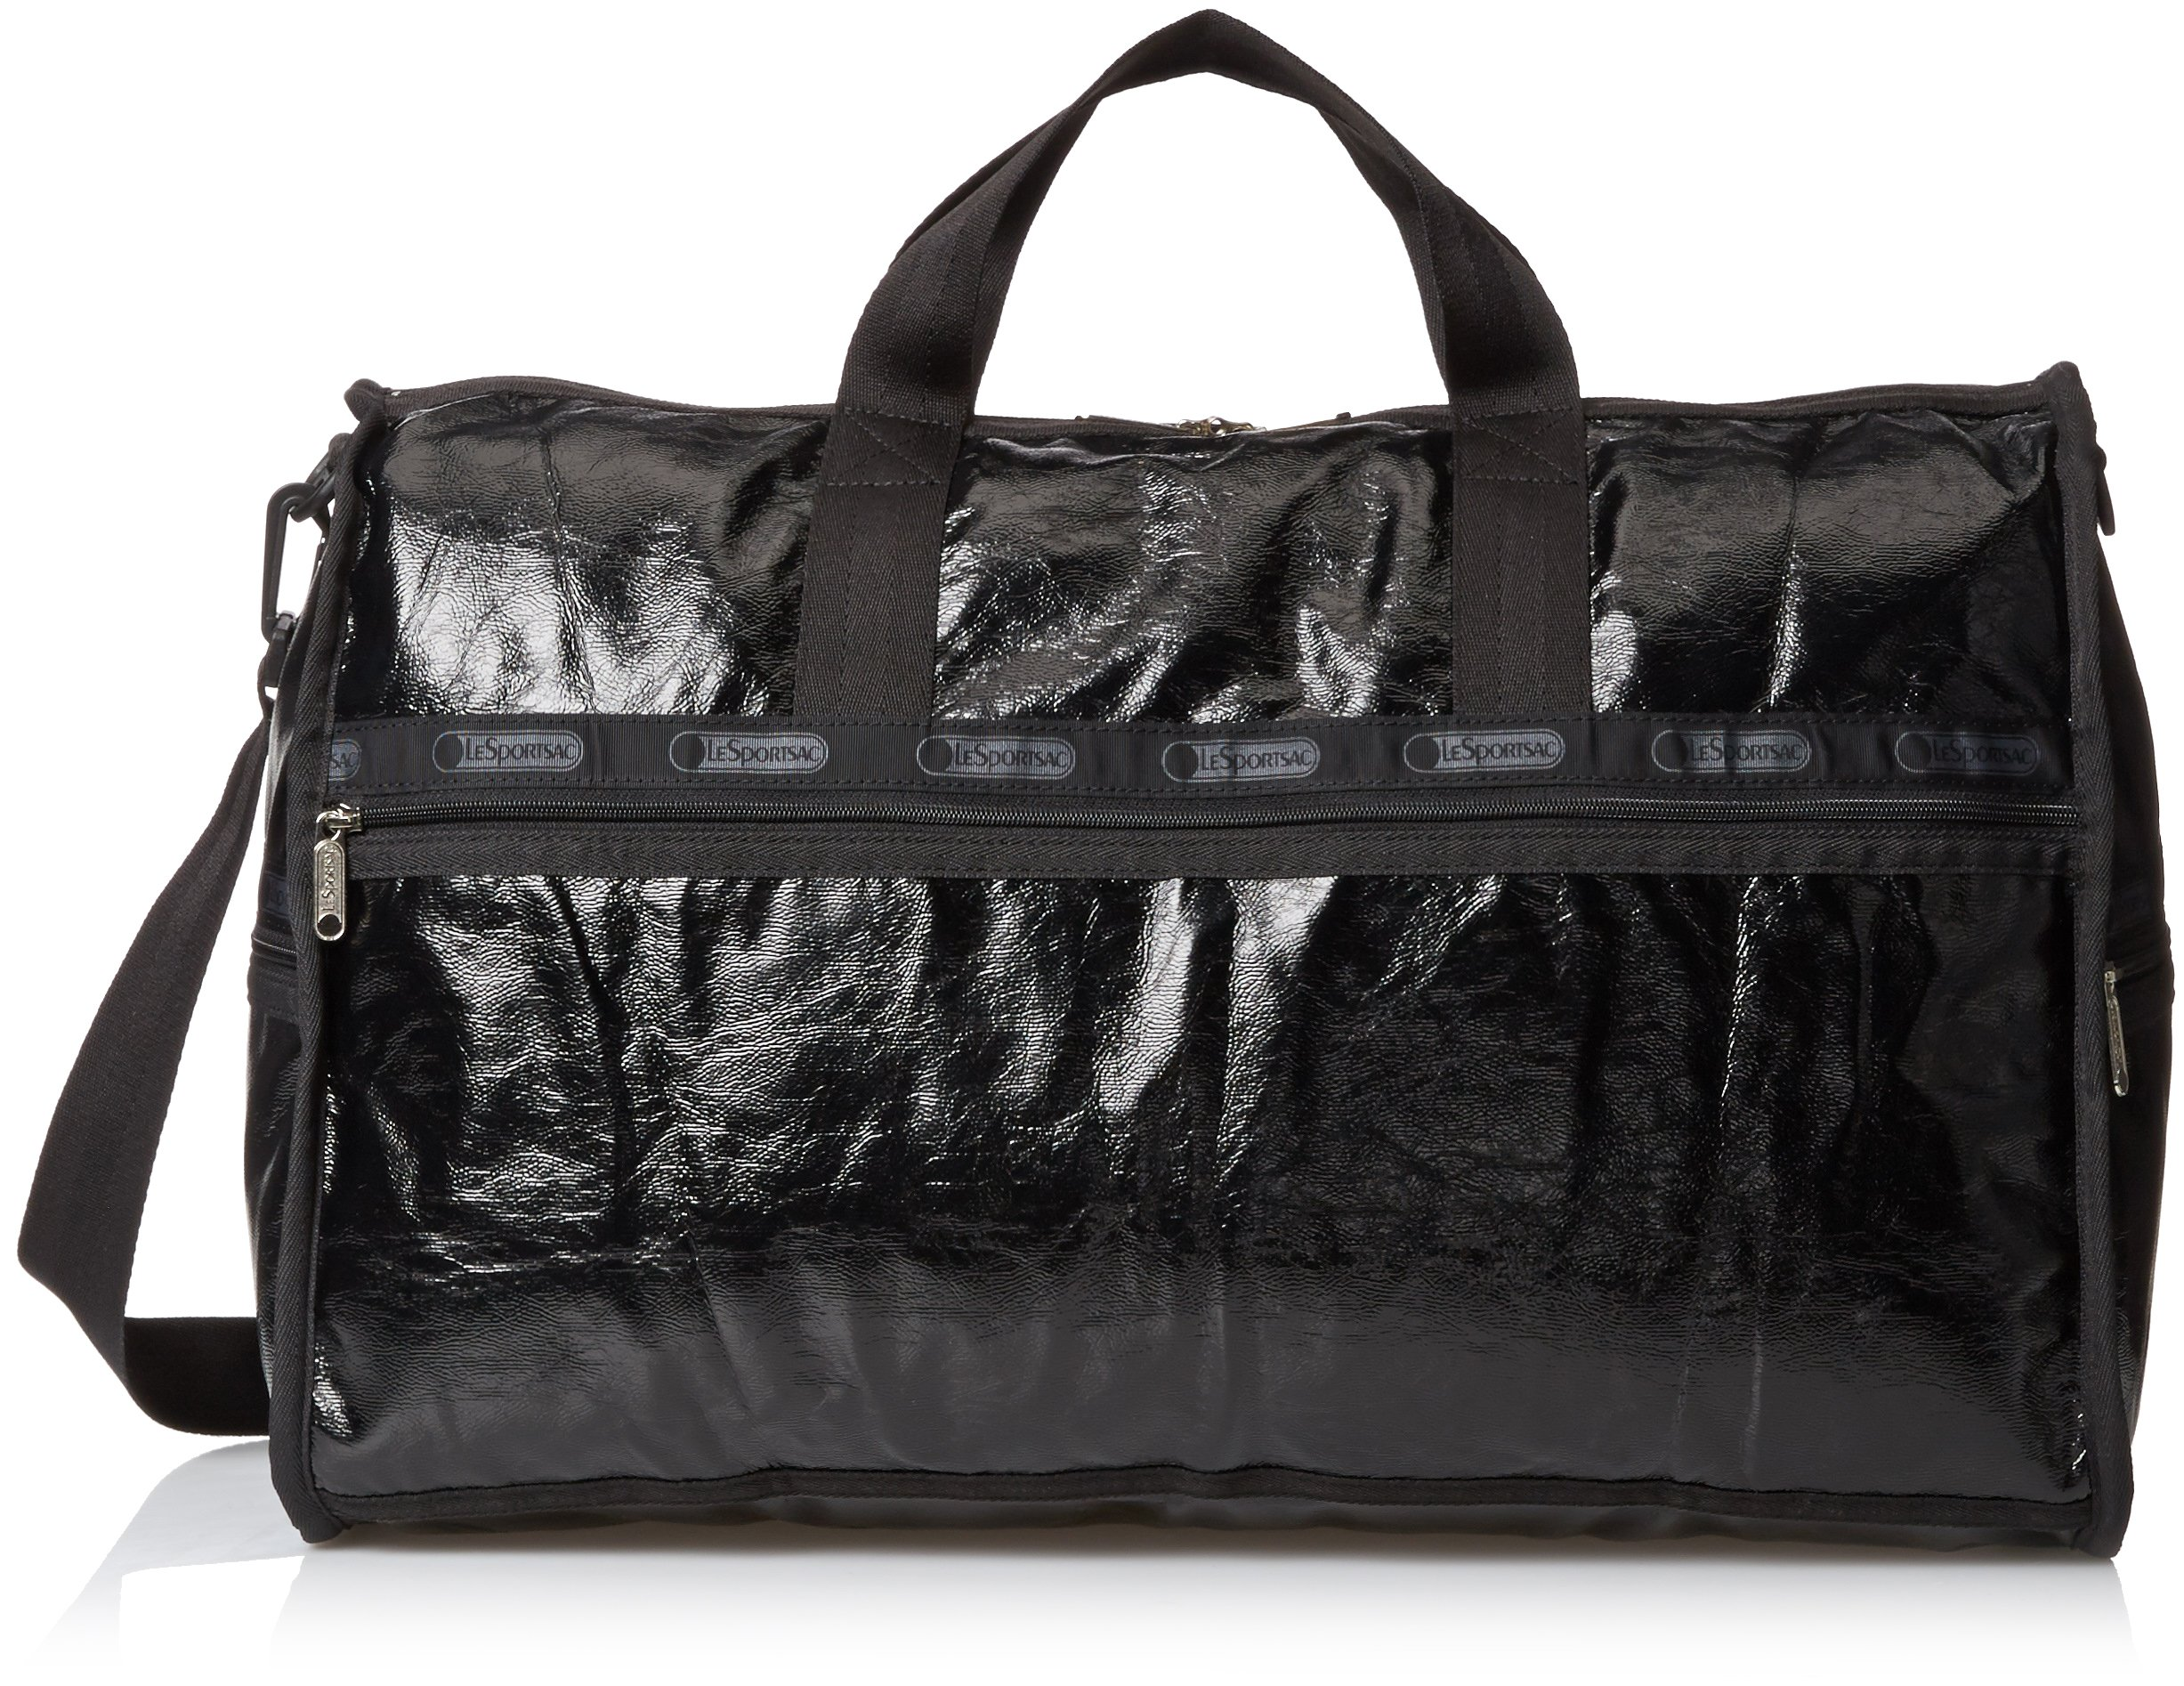 LeSportsac Large Weekender Bag, Black Crinkle Patent, One Size